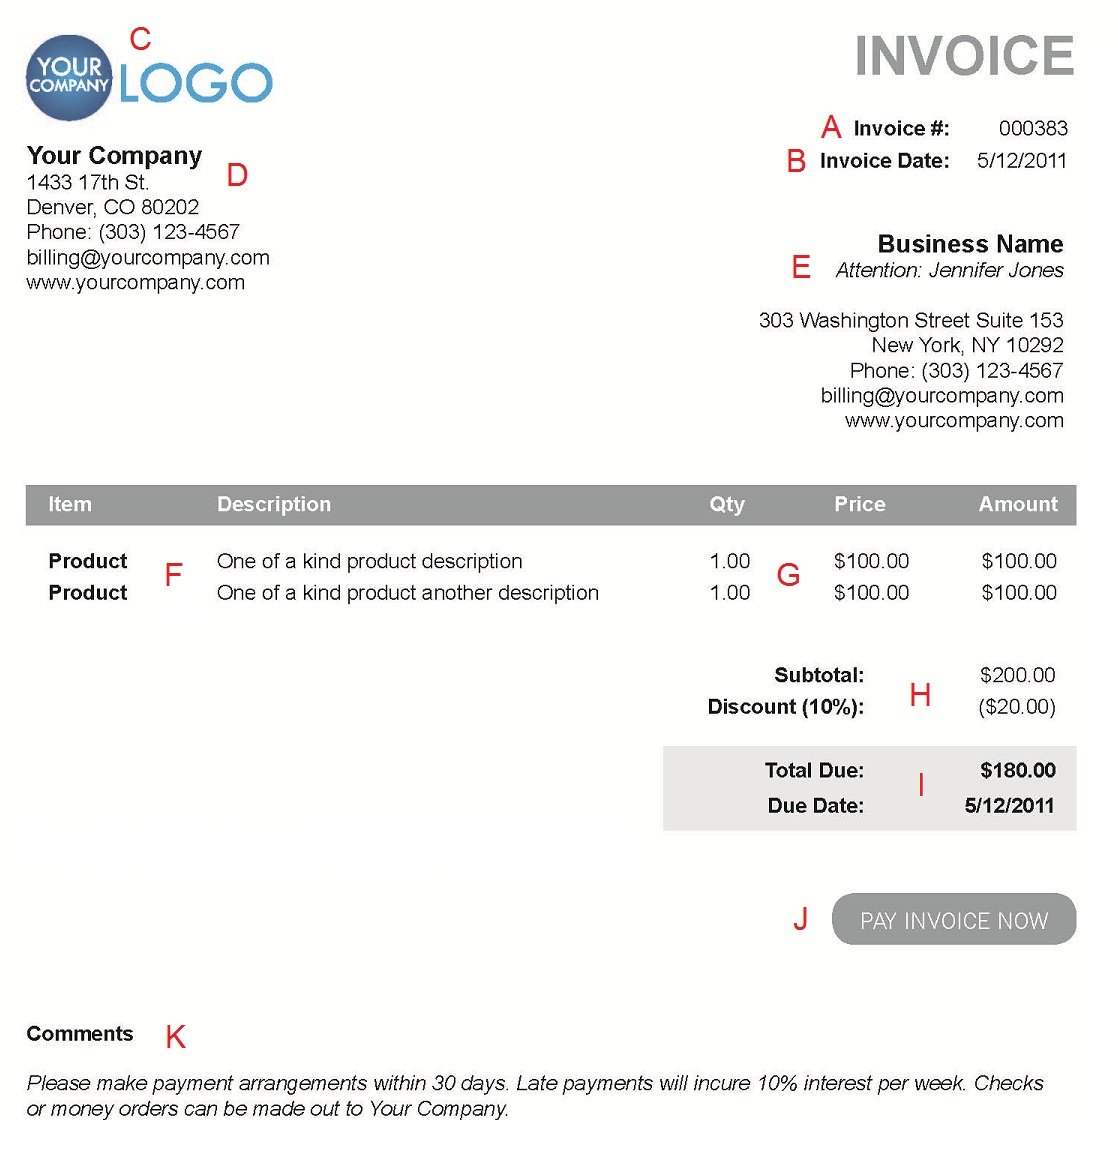 Coolmathgamesus  Pleasing The  Different Sections Of An Electronic Payment Invoice With Licious A  With Astonishing General Contractor Invoice Also Invoice By Wave In Addition Invoice Tracking And How To Invoice Someone As Well As Sap Invoice Table Additionally Golden Gate Bridge Toll Invoice From Paysimplecom With Coolmathgamesus  Licious The  Different Sections Of An Electronic Payment Invoice With Astonishing A  And Pleasing General Contractor Invoice Also Invoice By Wave In Addition Invoice Tracking From Paysimplecom